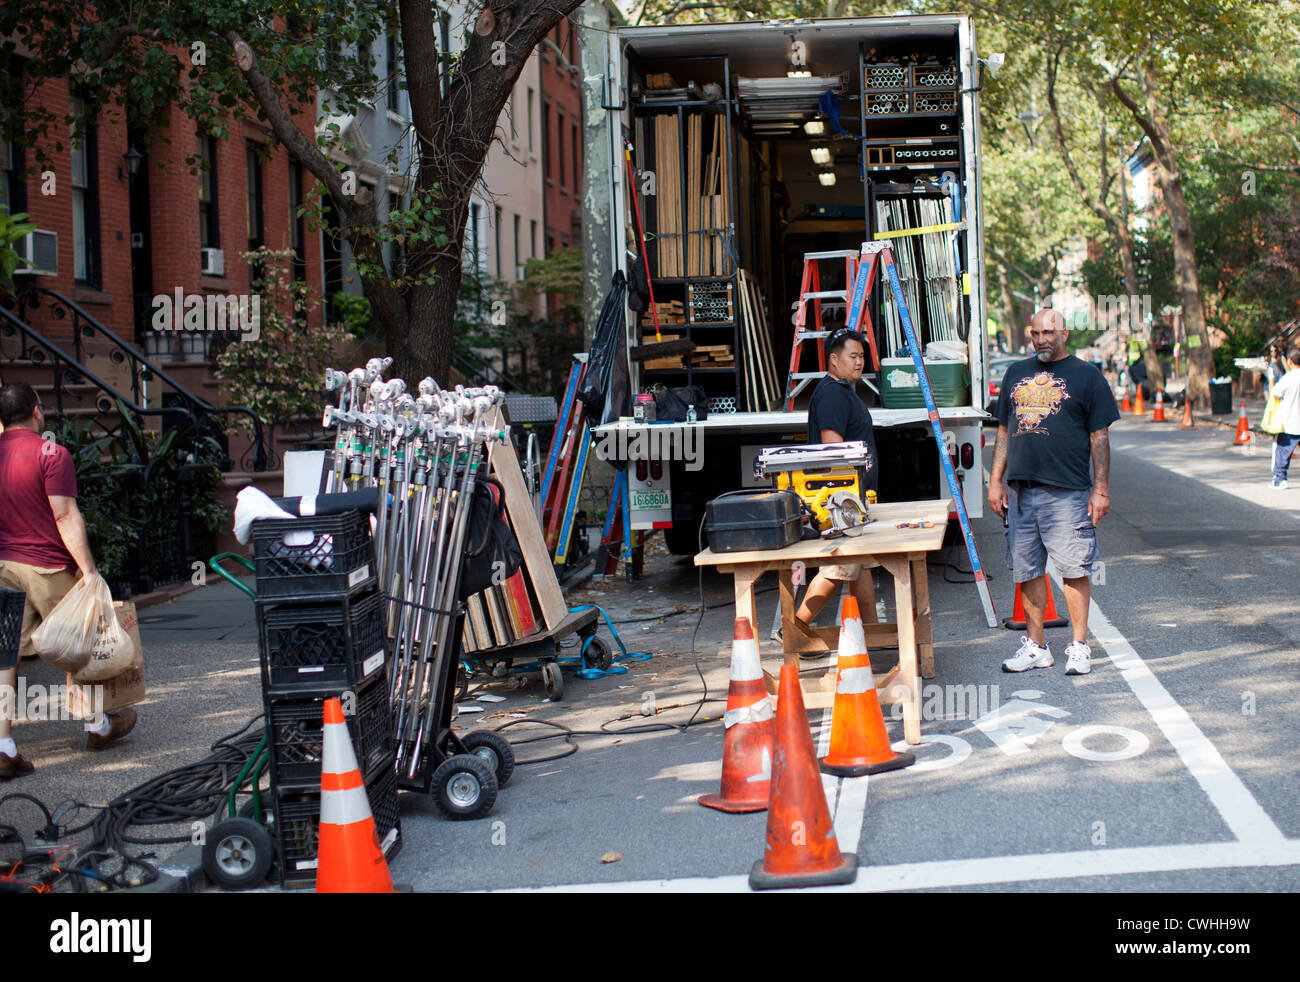 Workers help construct a movie set for 'Zero Hour,' an ABC-TV drama show filmed in Brooklyn, New York. - Stock Image